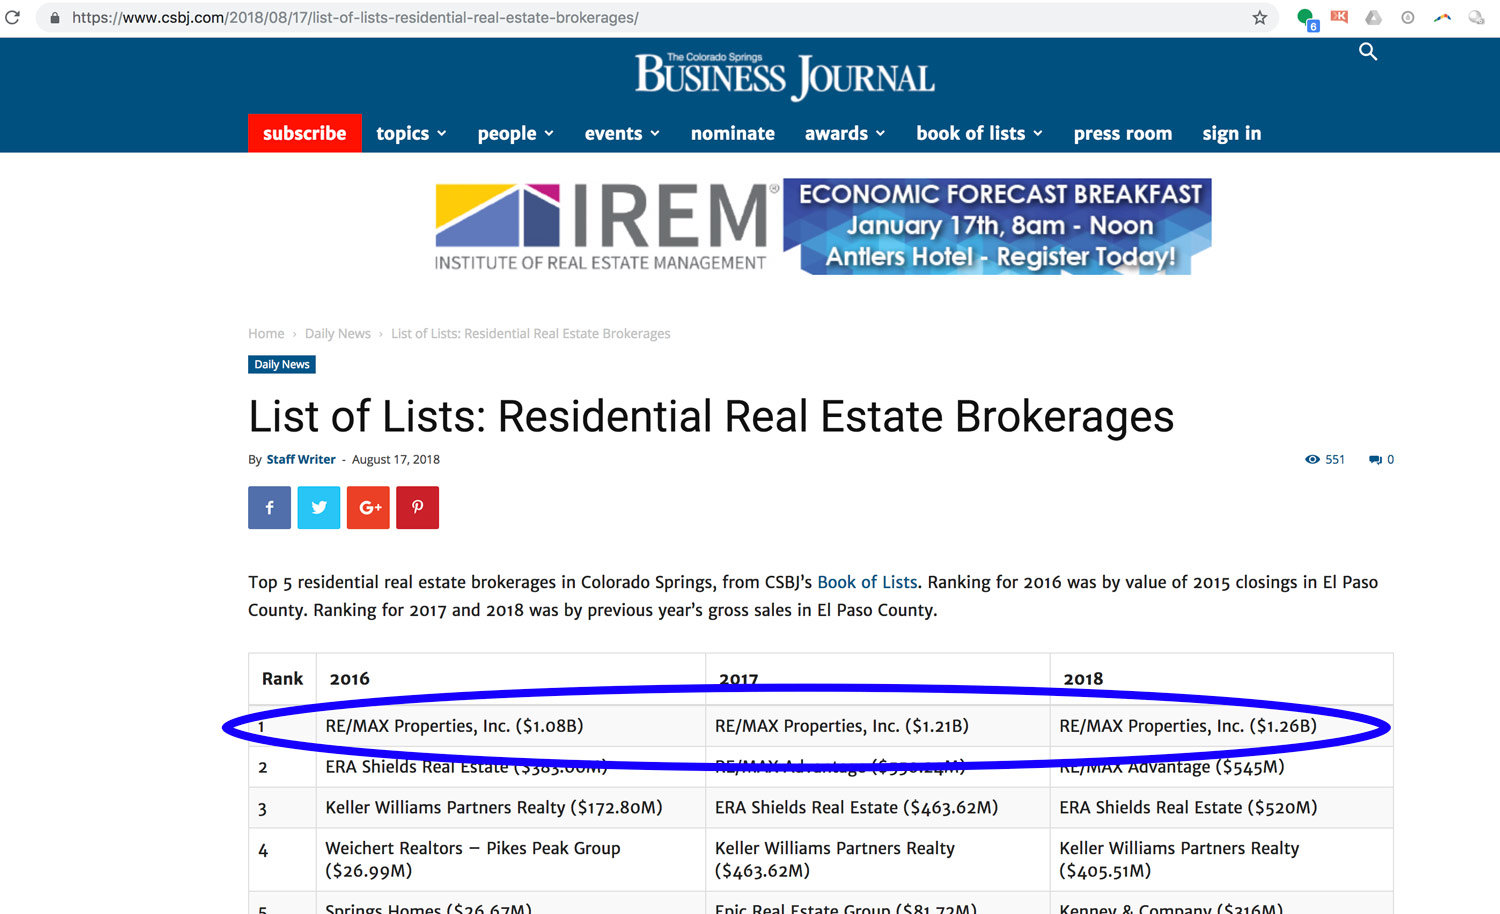 Top Real Estate Brokerages in Colorado Springs